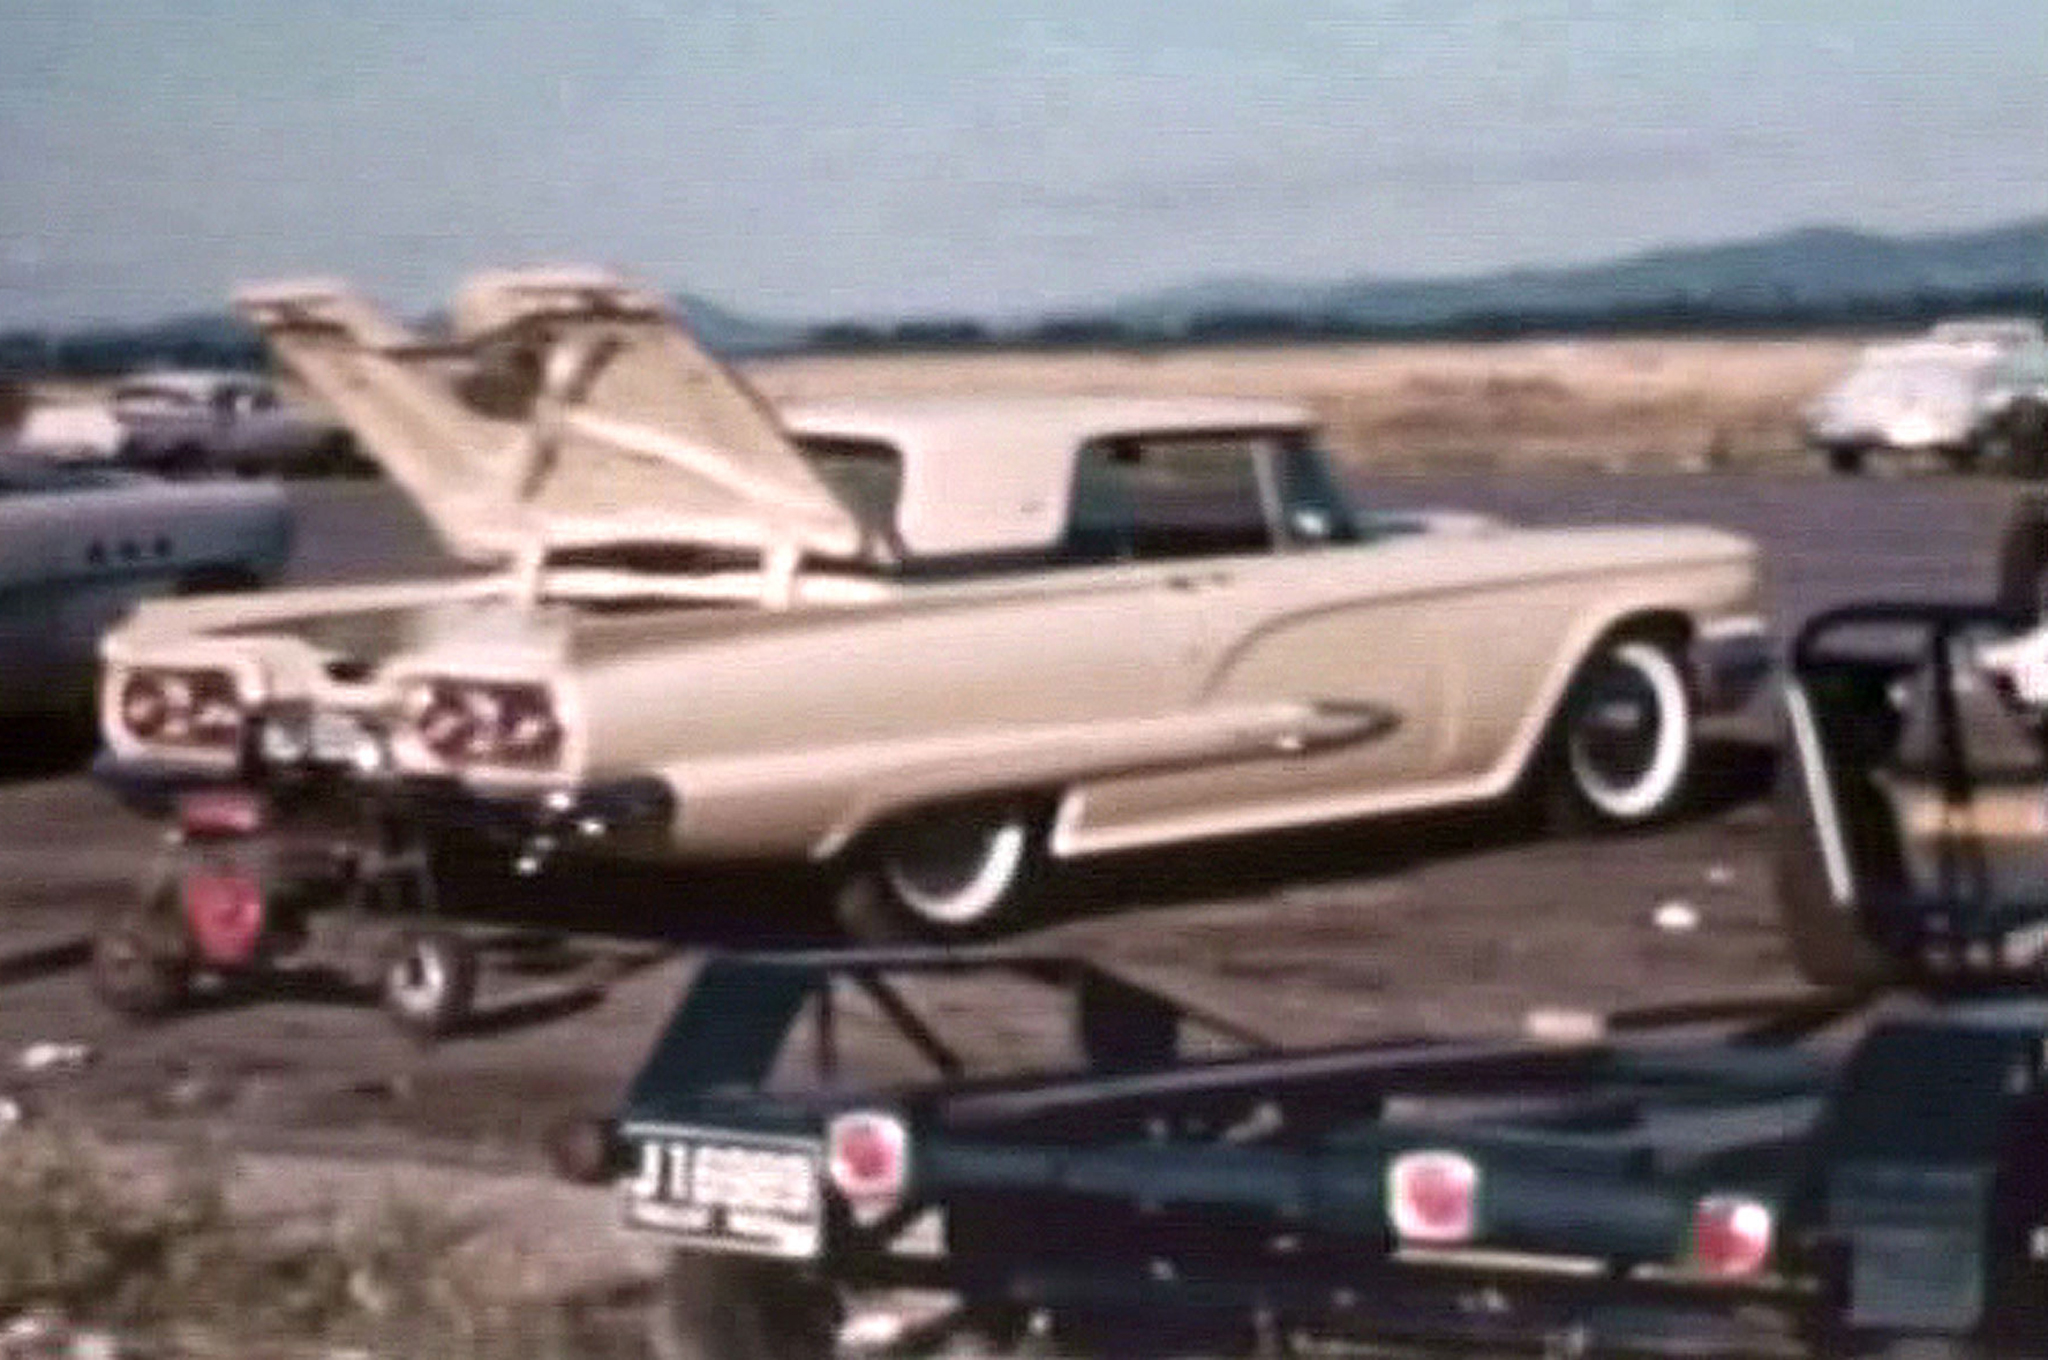 George Warsinski's Thunderbird was significant for more than its optional 430. In stock form, the car ran a 16.69-second e.t. at 84.03 mph, but the crew got it to 14.86 at 94.55 mph on nitrous. Bear in mind that's a 4,300-pound car with a 2.89:1 gear. The photo is rough because it's a capture from 8mm film.